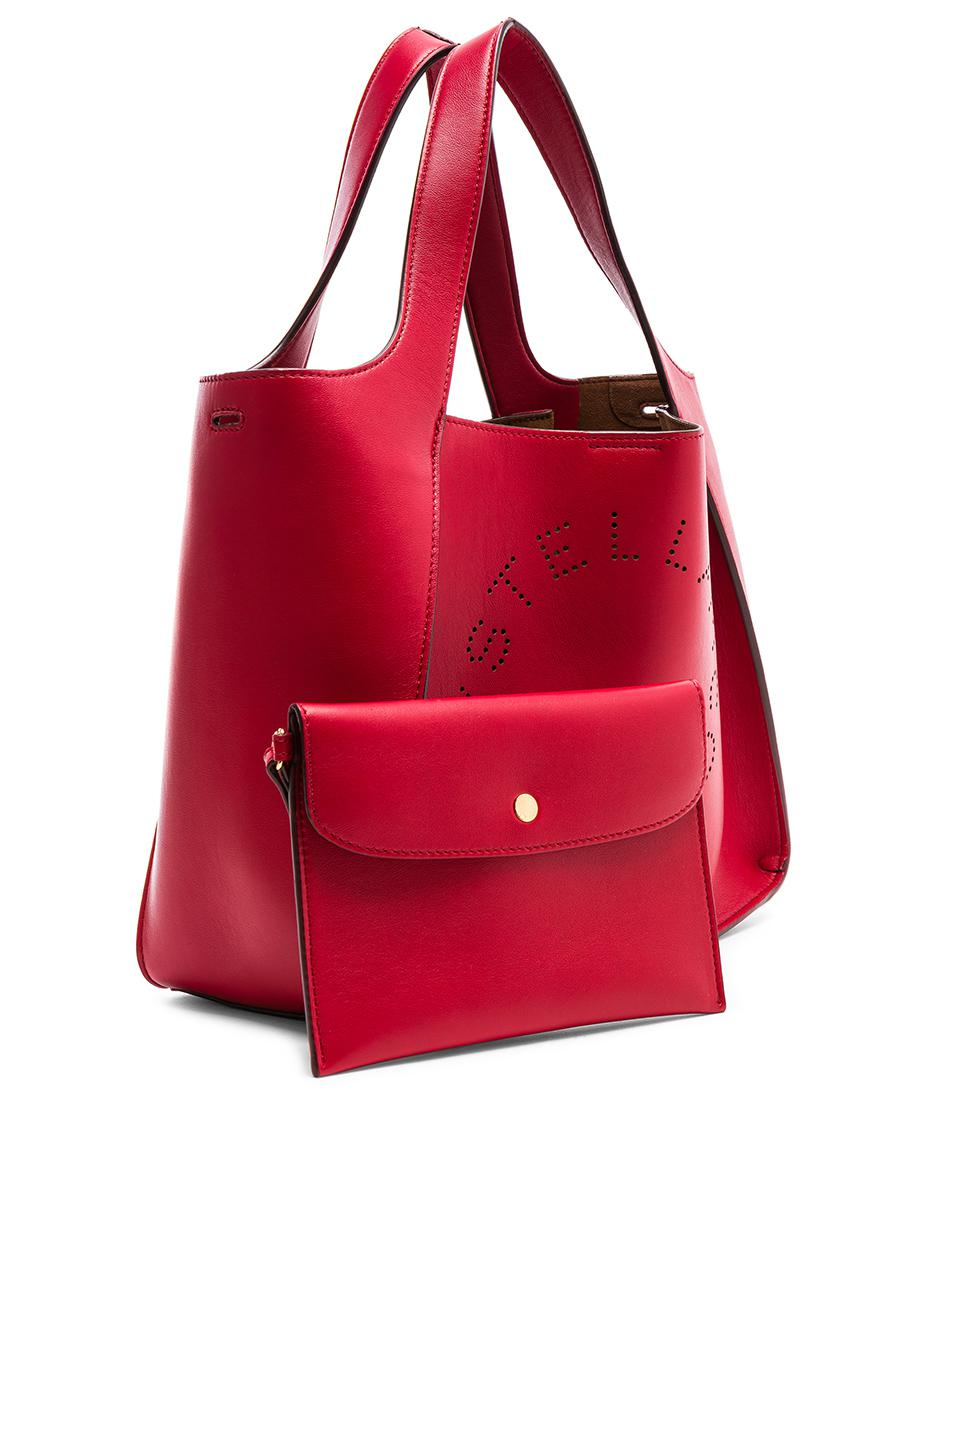 Stella McCartney Perforated Logo Crossbody Tote in Red